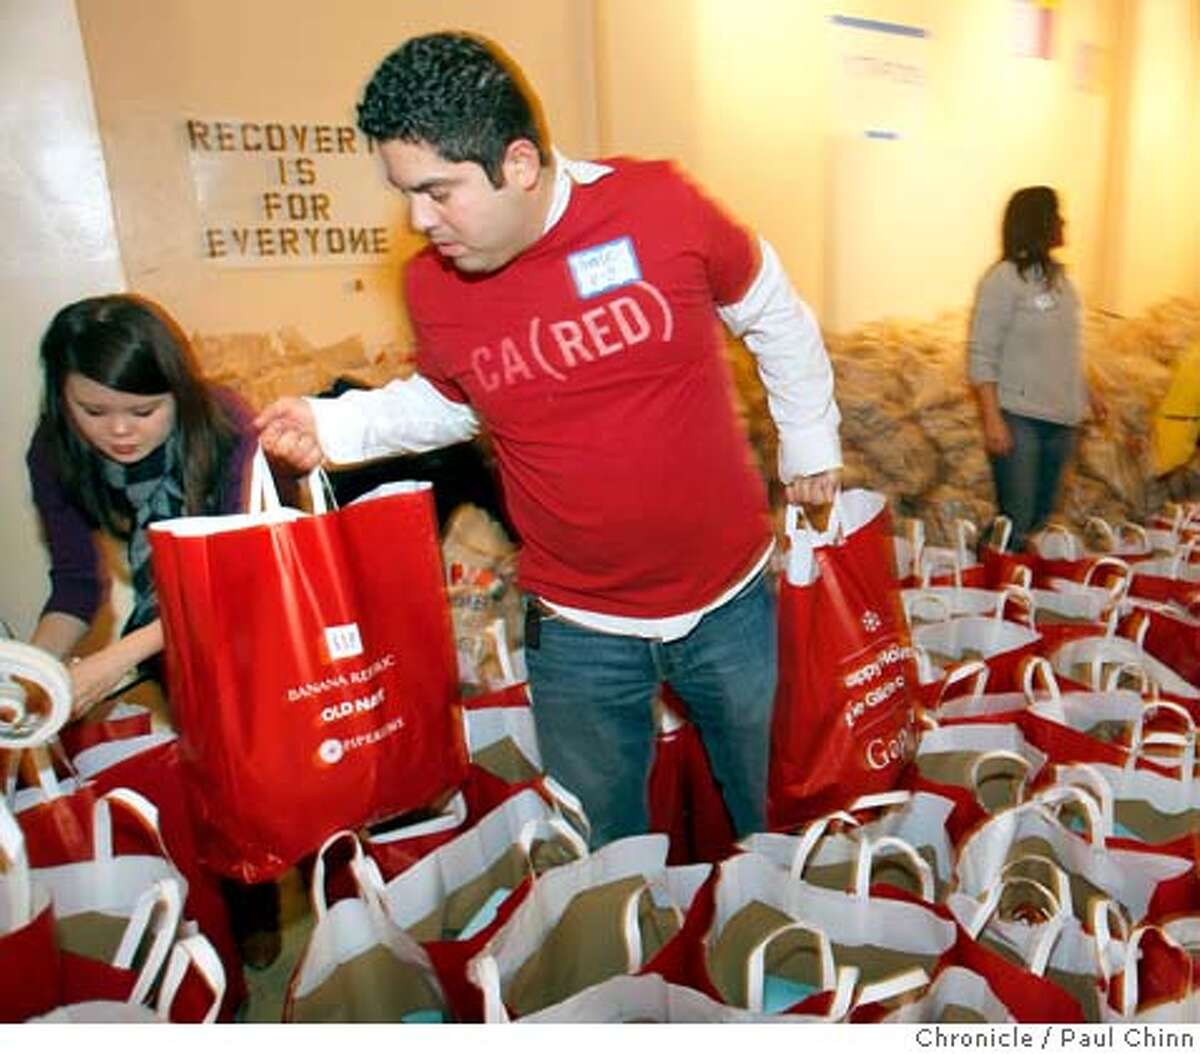 Volunteer Charlie Zammit moves bags forward during the annual grocery bag giveaway for those in need at Glide Memorial Church in San Francisco, Calif. on Wednesday, Dec. 19, 2007. Each of the 6,000 bags contained either a turkey or a chicken, potatoes, bread, pasta and vegetables. Some of the recipients were in line as early as 9 p.m. Tuesday. PAUL CHINN/The Chronicle **Charlie Zammit